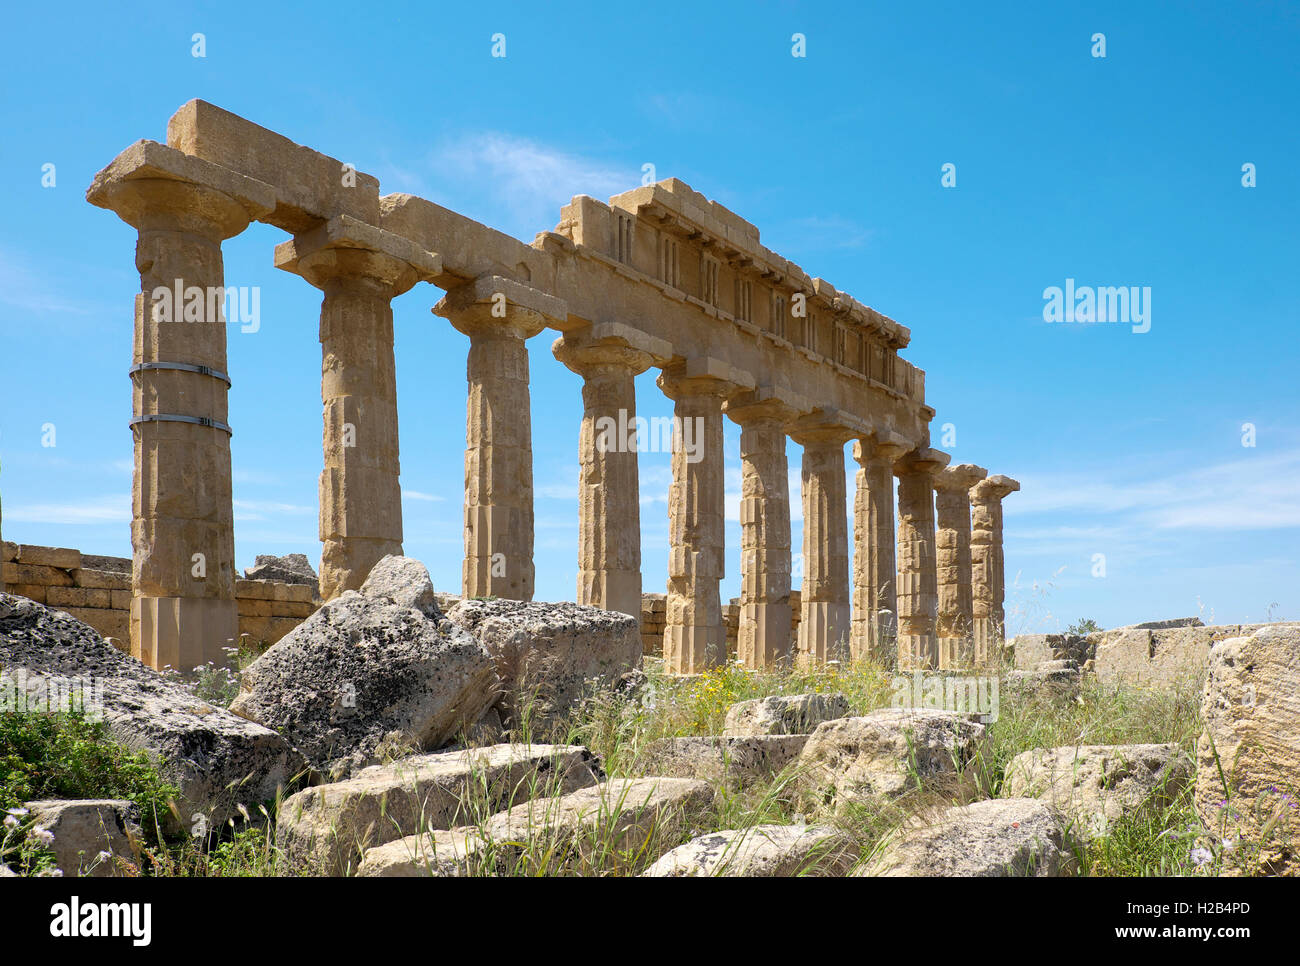 Greek ancient Temple C, Acropolis, Archaeological Park Selinunte, Selinunte, Sicily, Italy - Stock Image